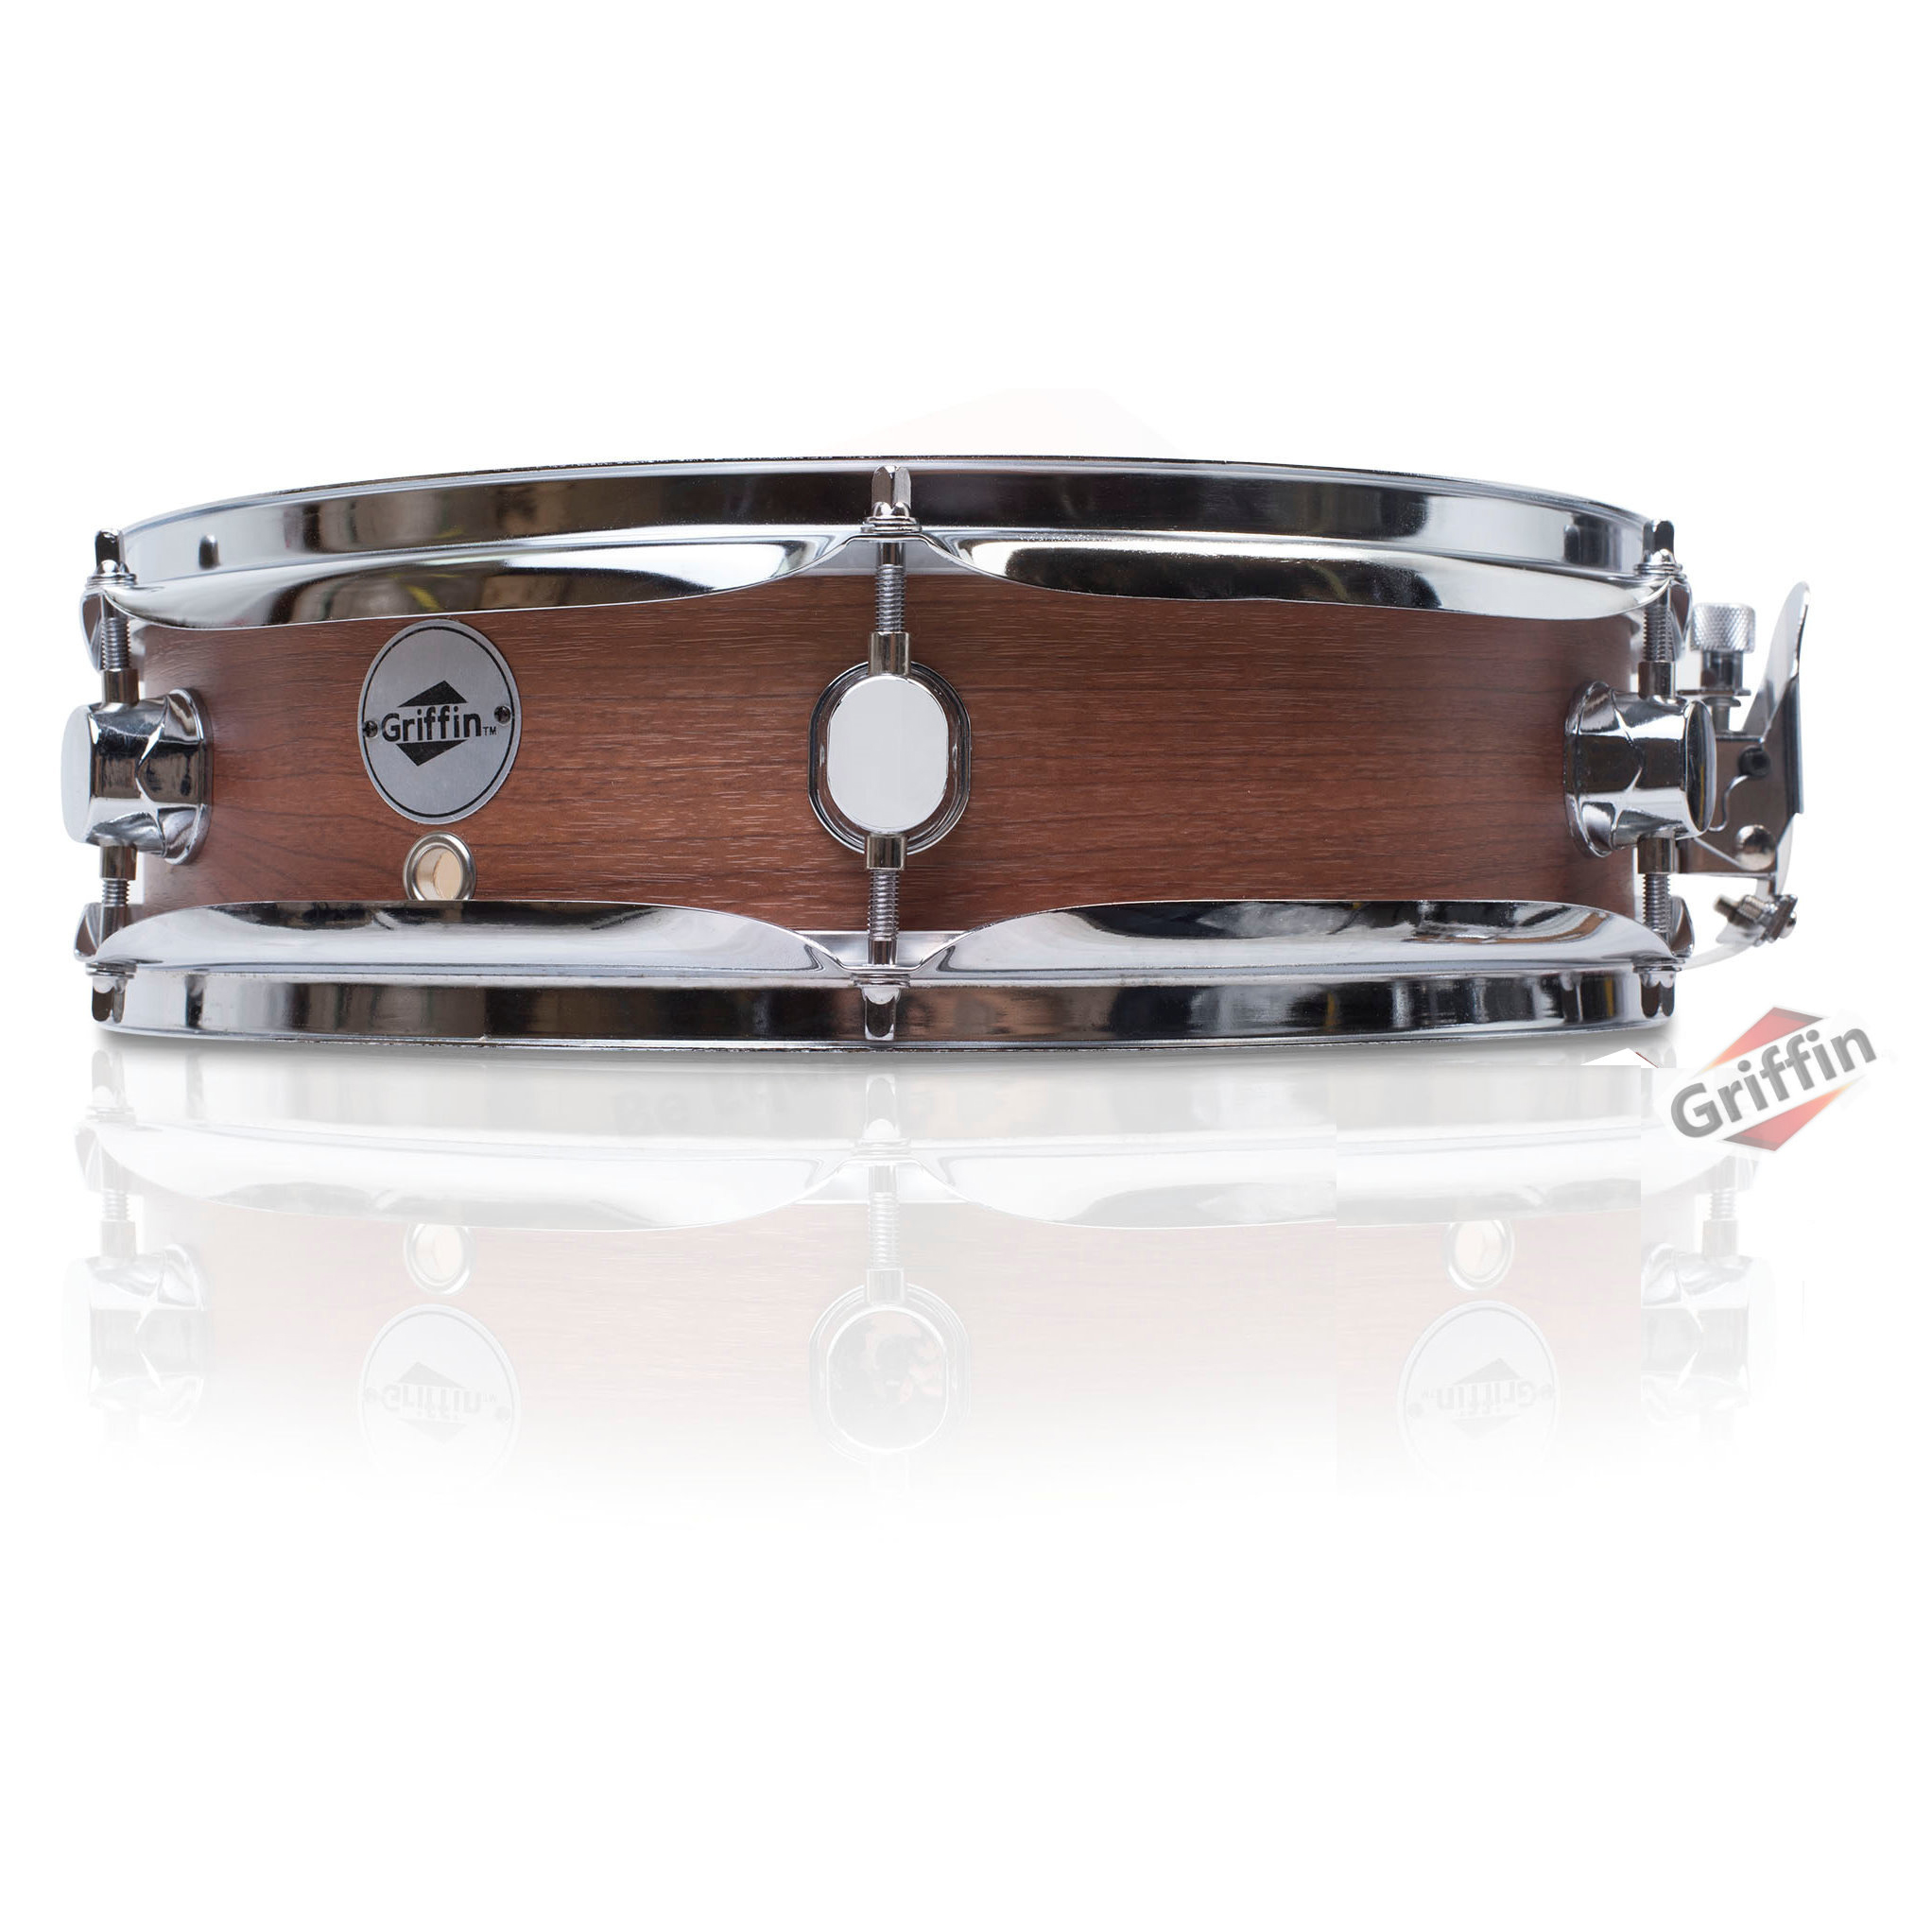 Griffin piccolo snare drum 13x3 5 dark wood shell for Hickory flat